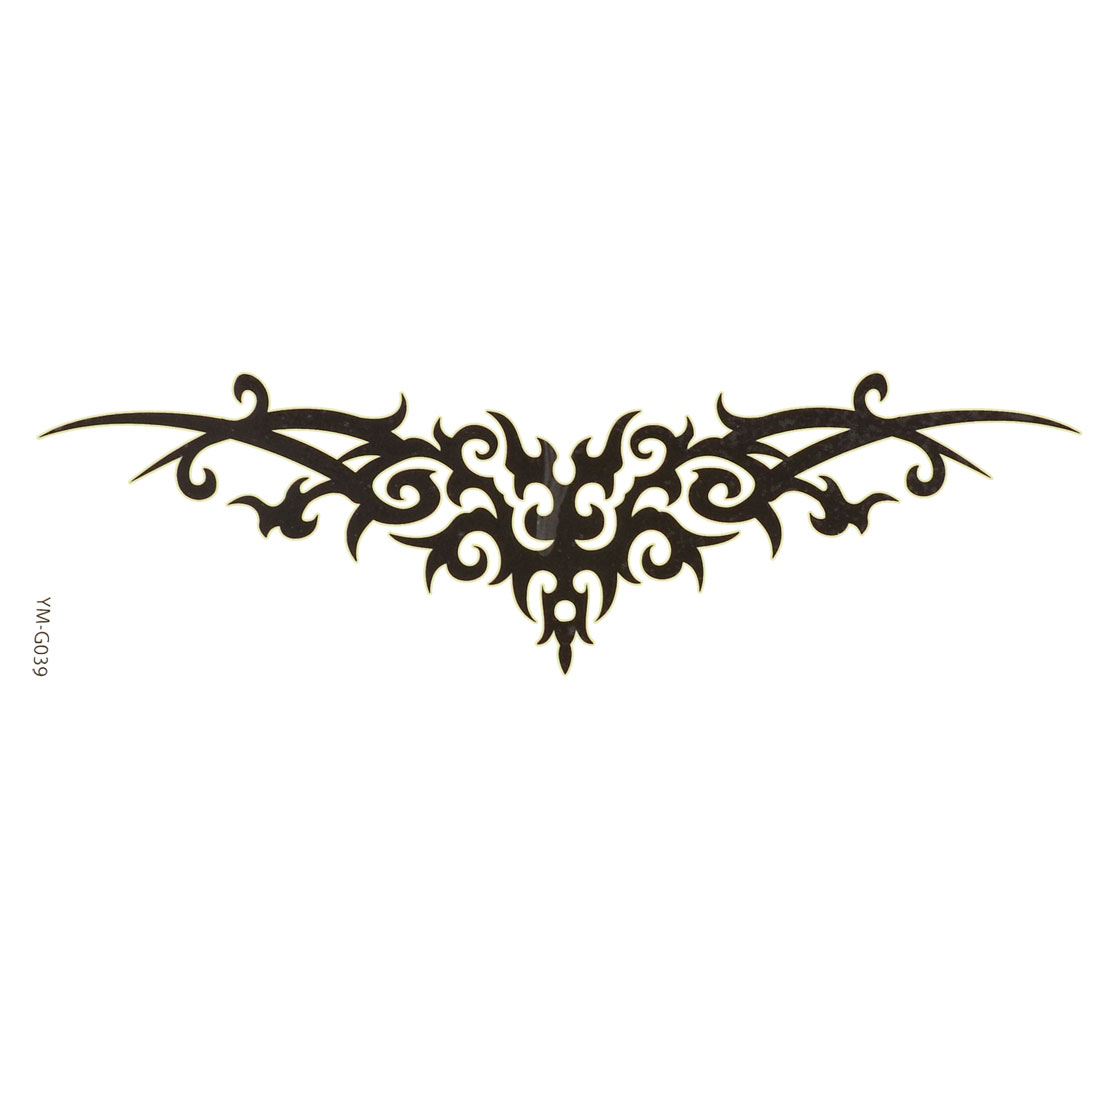 Black Symmetrical Design Transfer Tribal Tattoos Seal Skin Beauty Decal